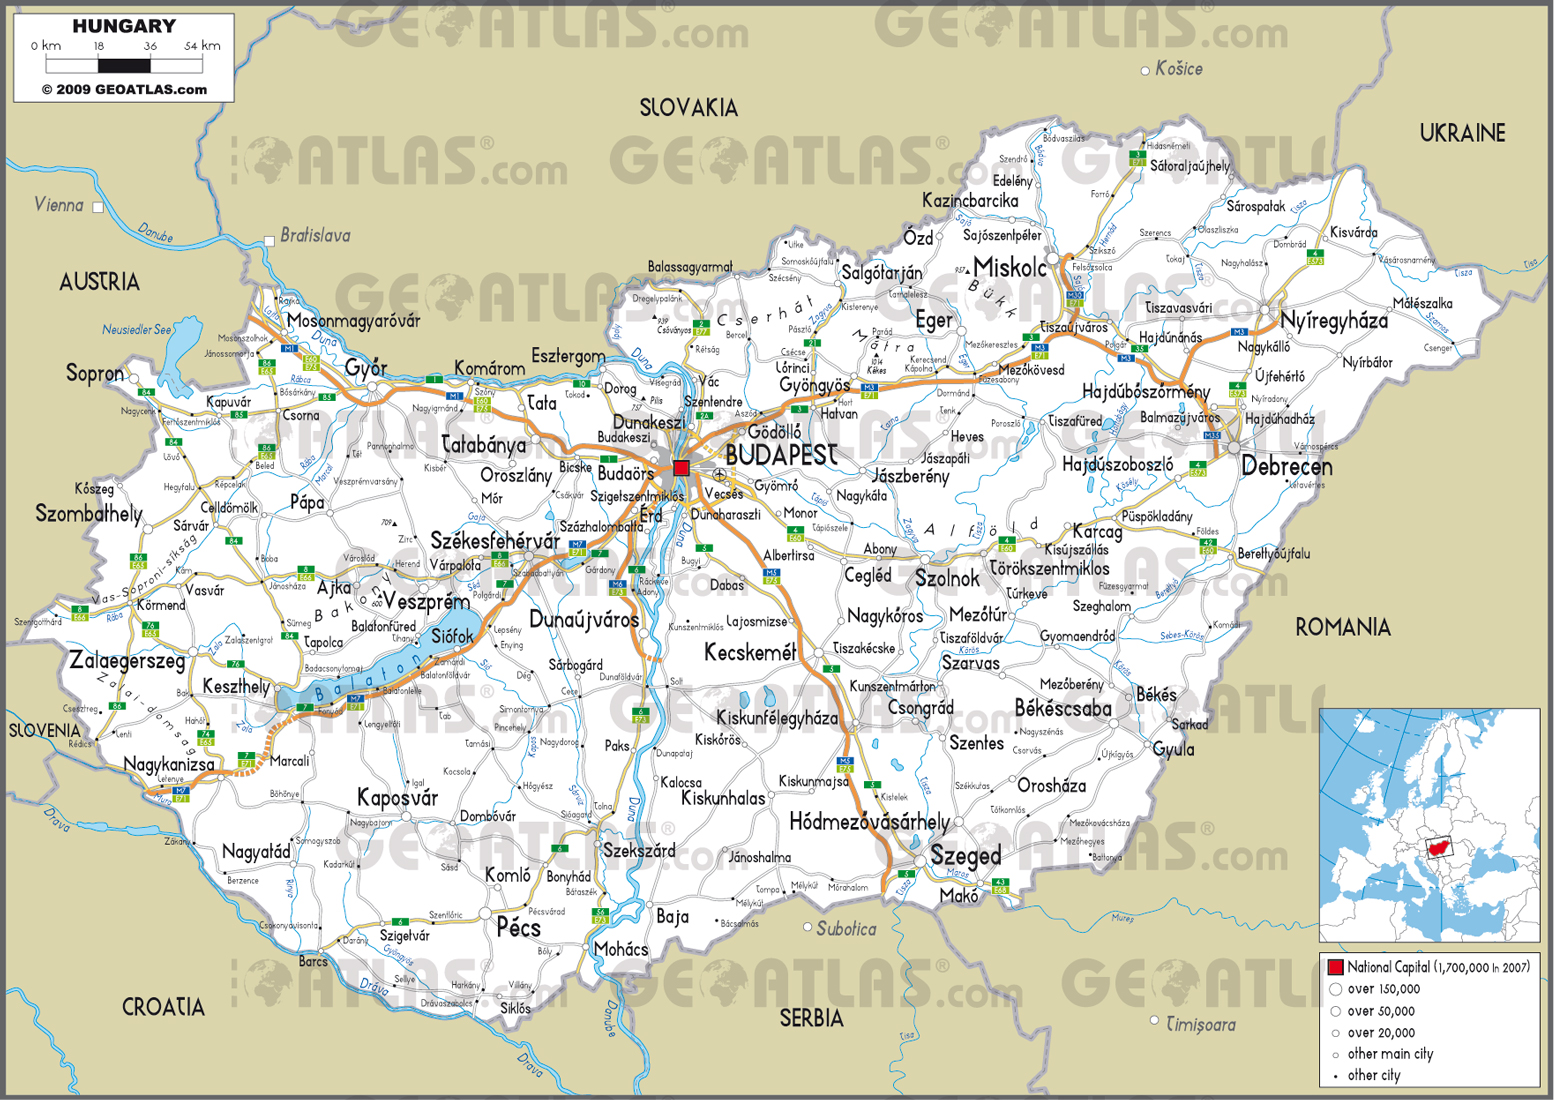 Road Map Of Serbia Archives Profu De Geogra